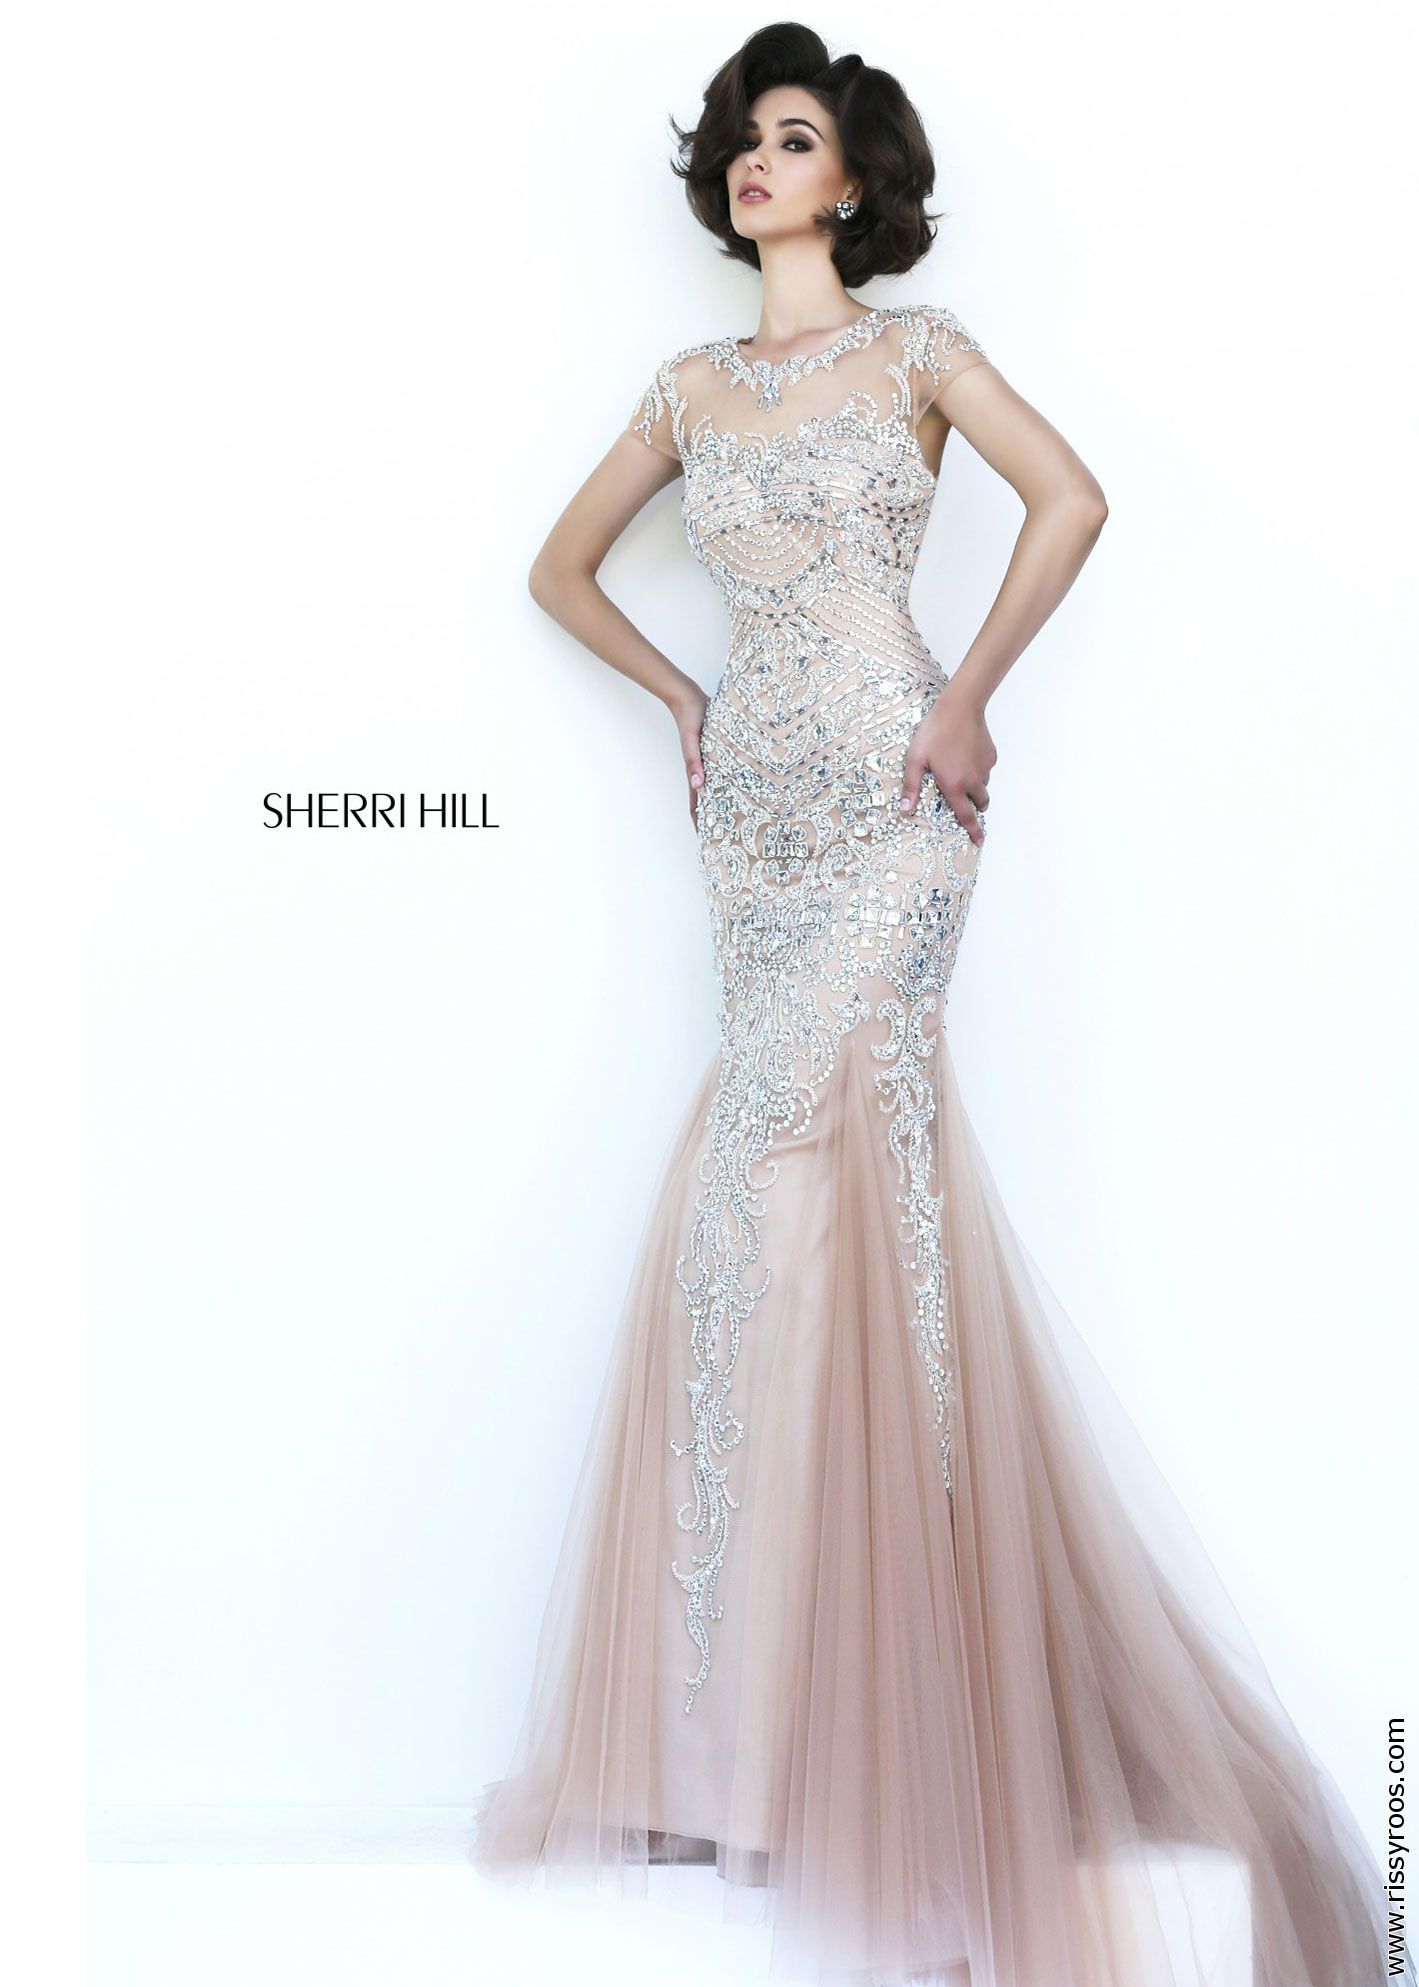 Sherri hill sparkling silver beaded illusion gown stunning